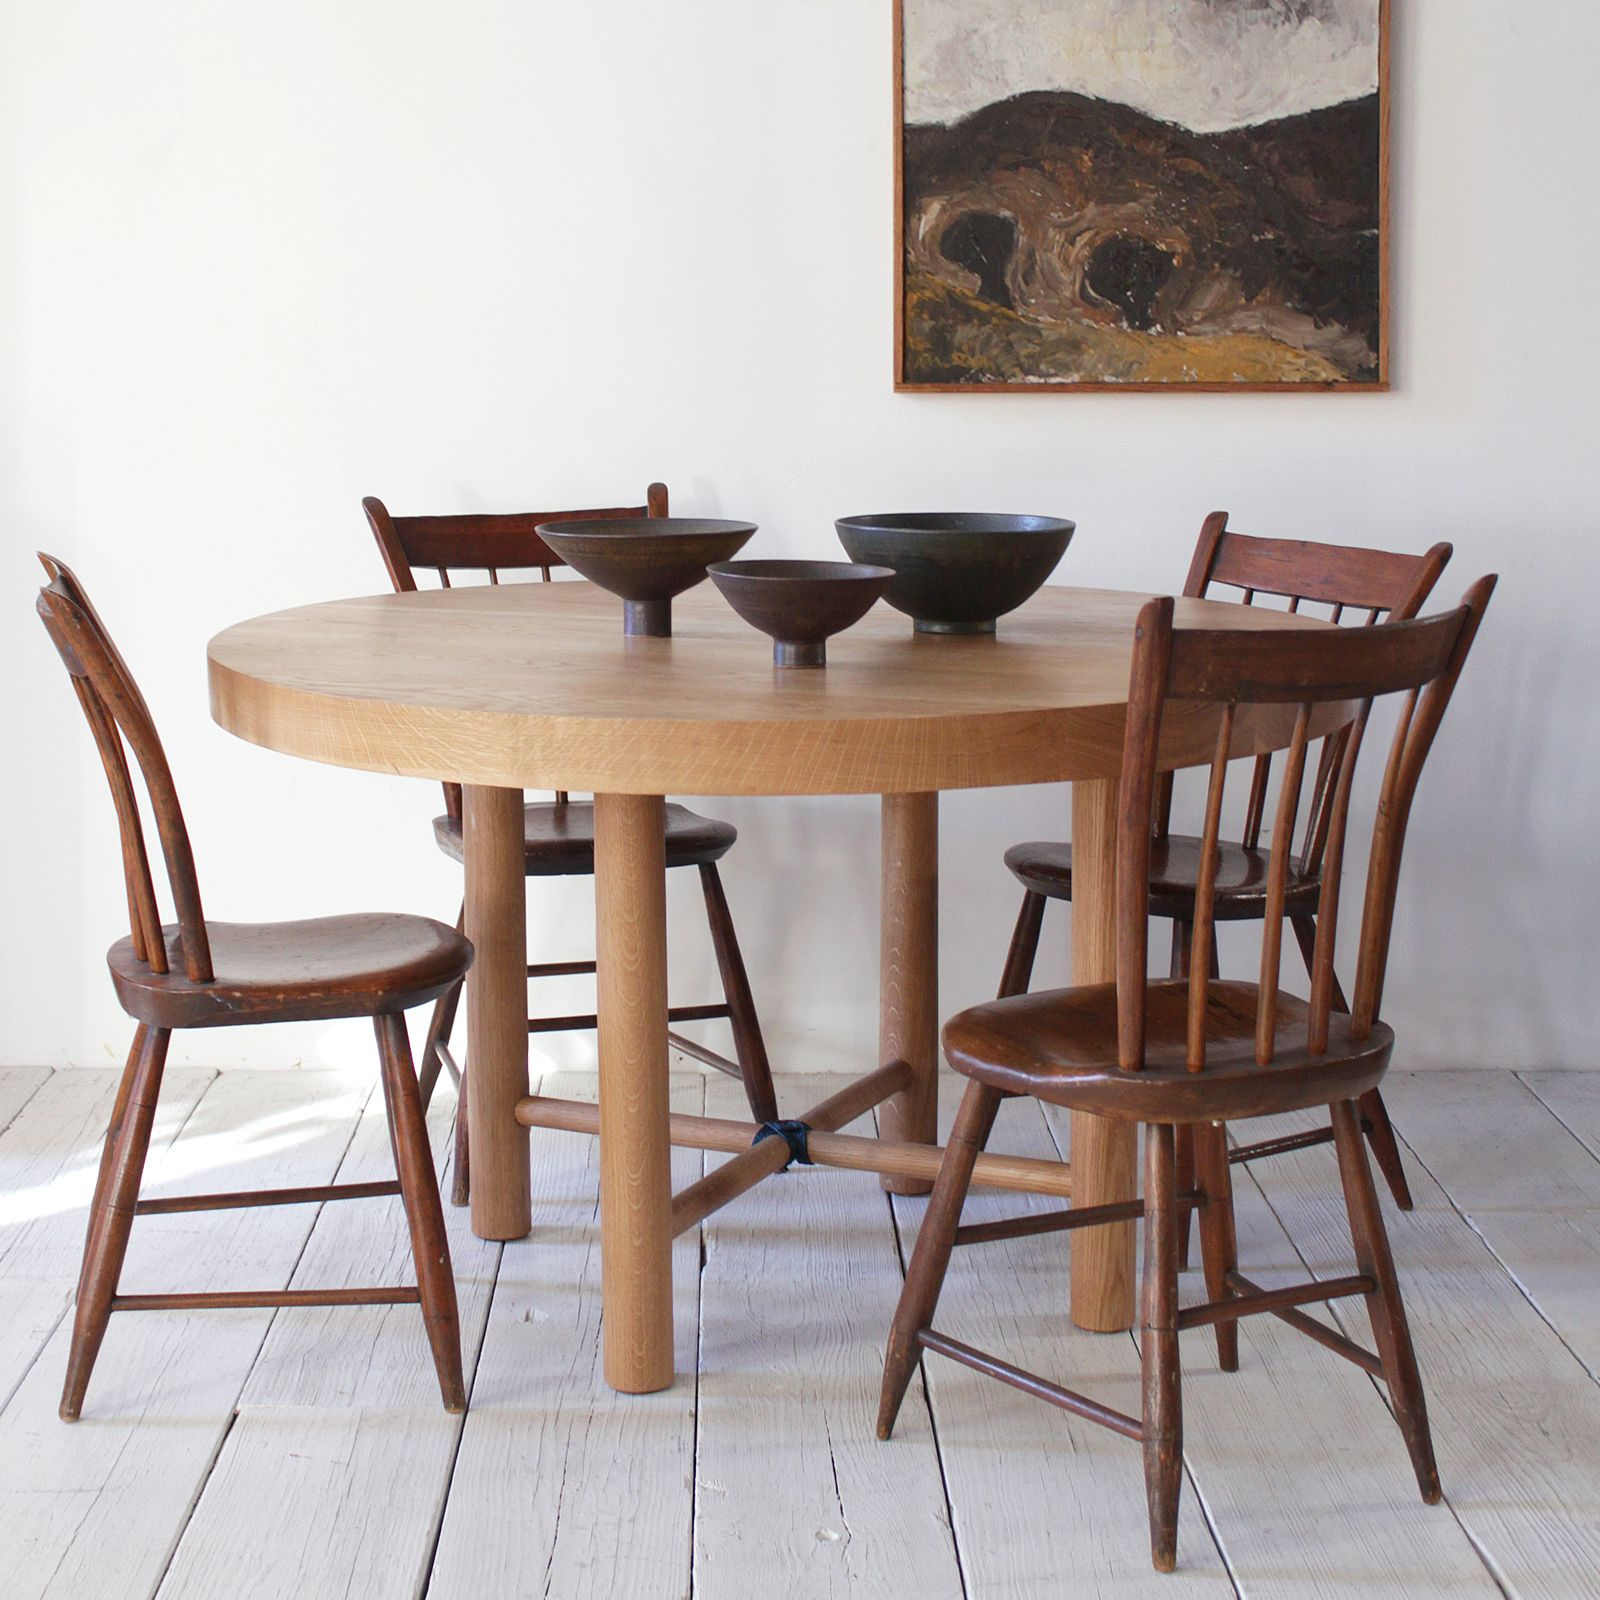 Nickey Kehoe's Latest Dining Table Is The NK 50 Round